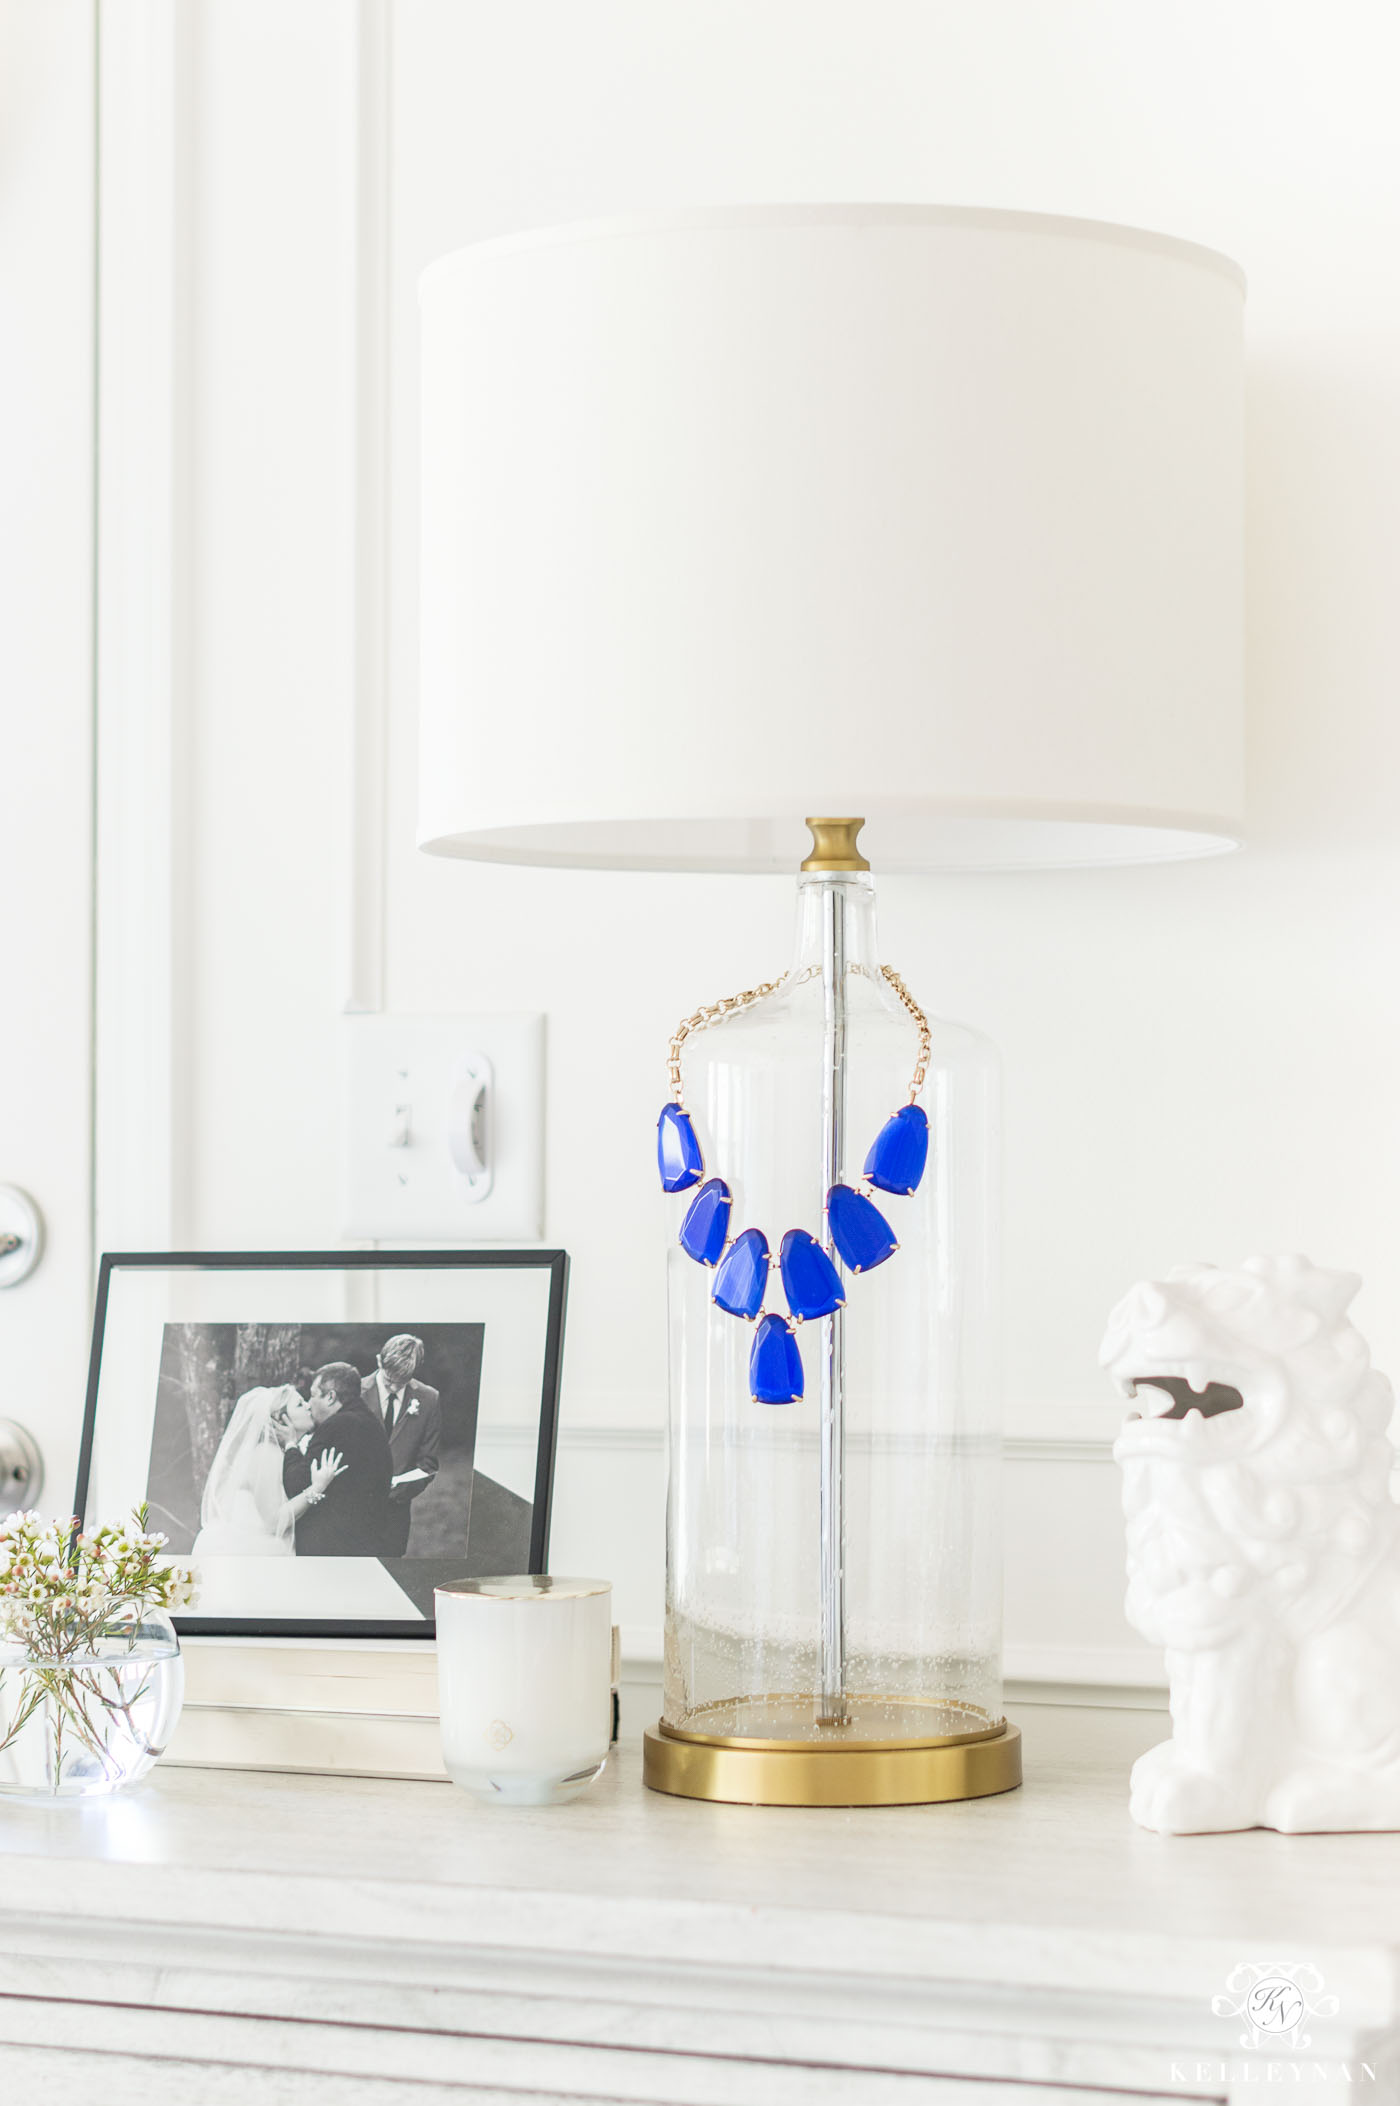 How to display jewelry on your bedroom nightstand